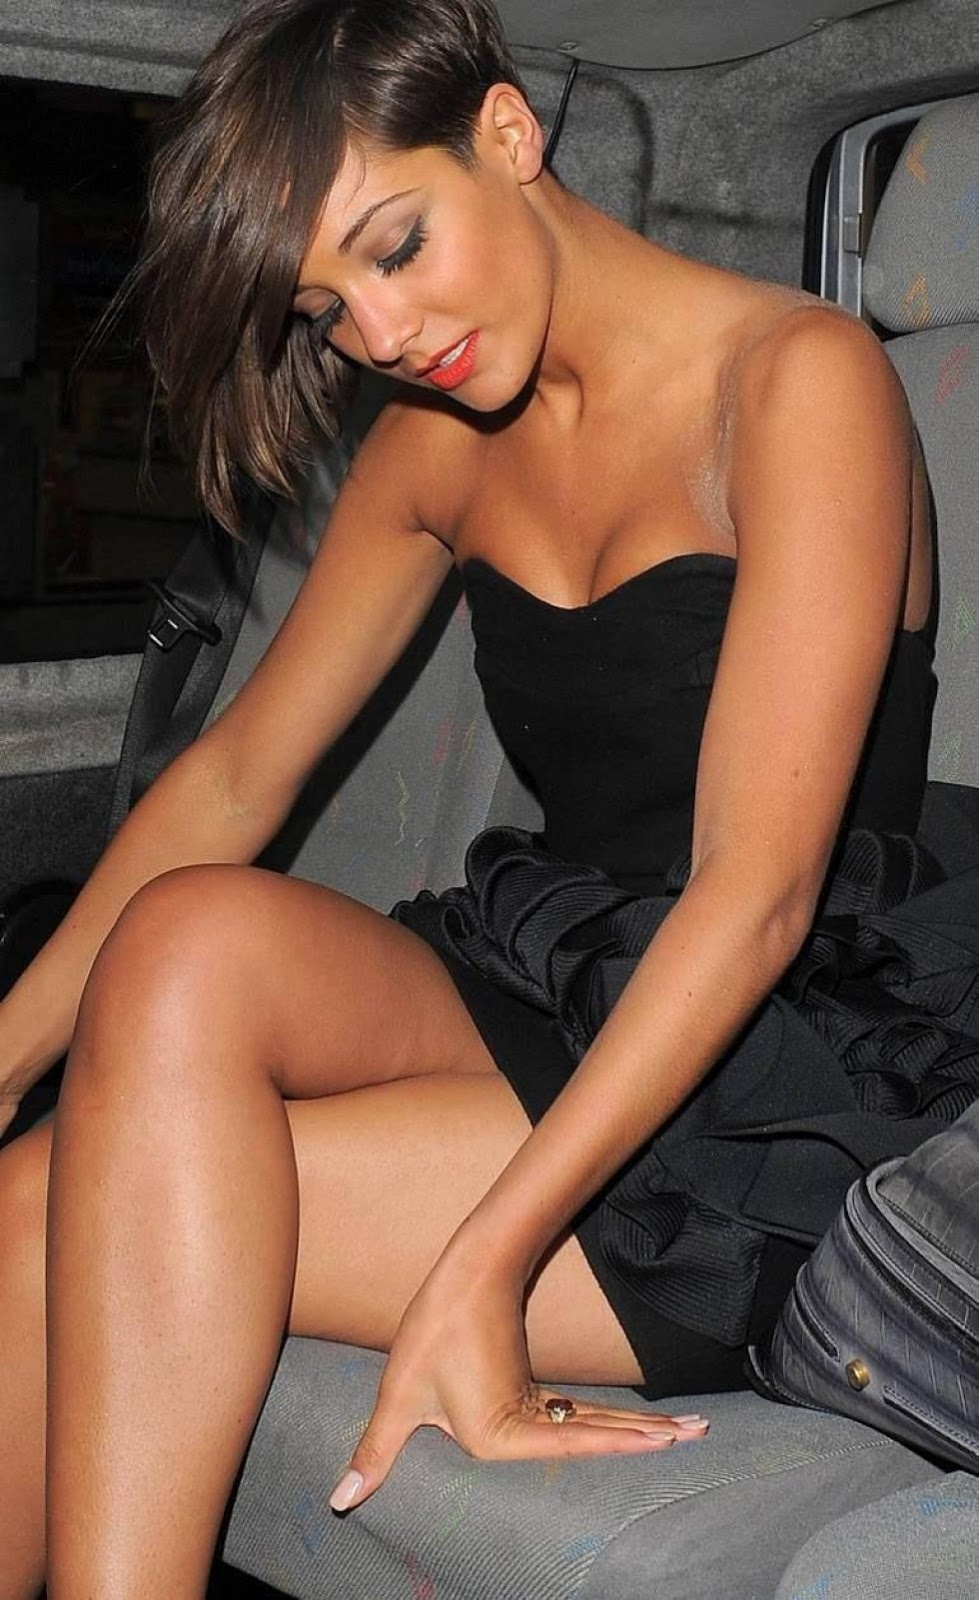 Legs frankie sandford crossed